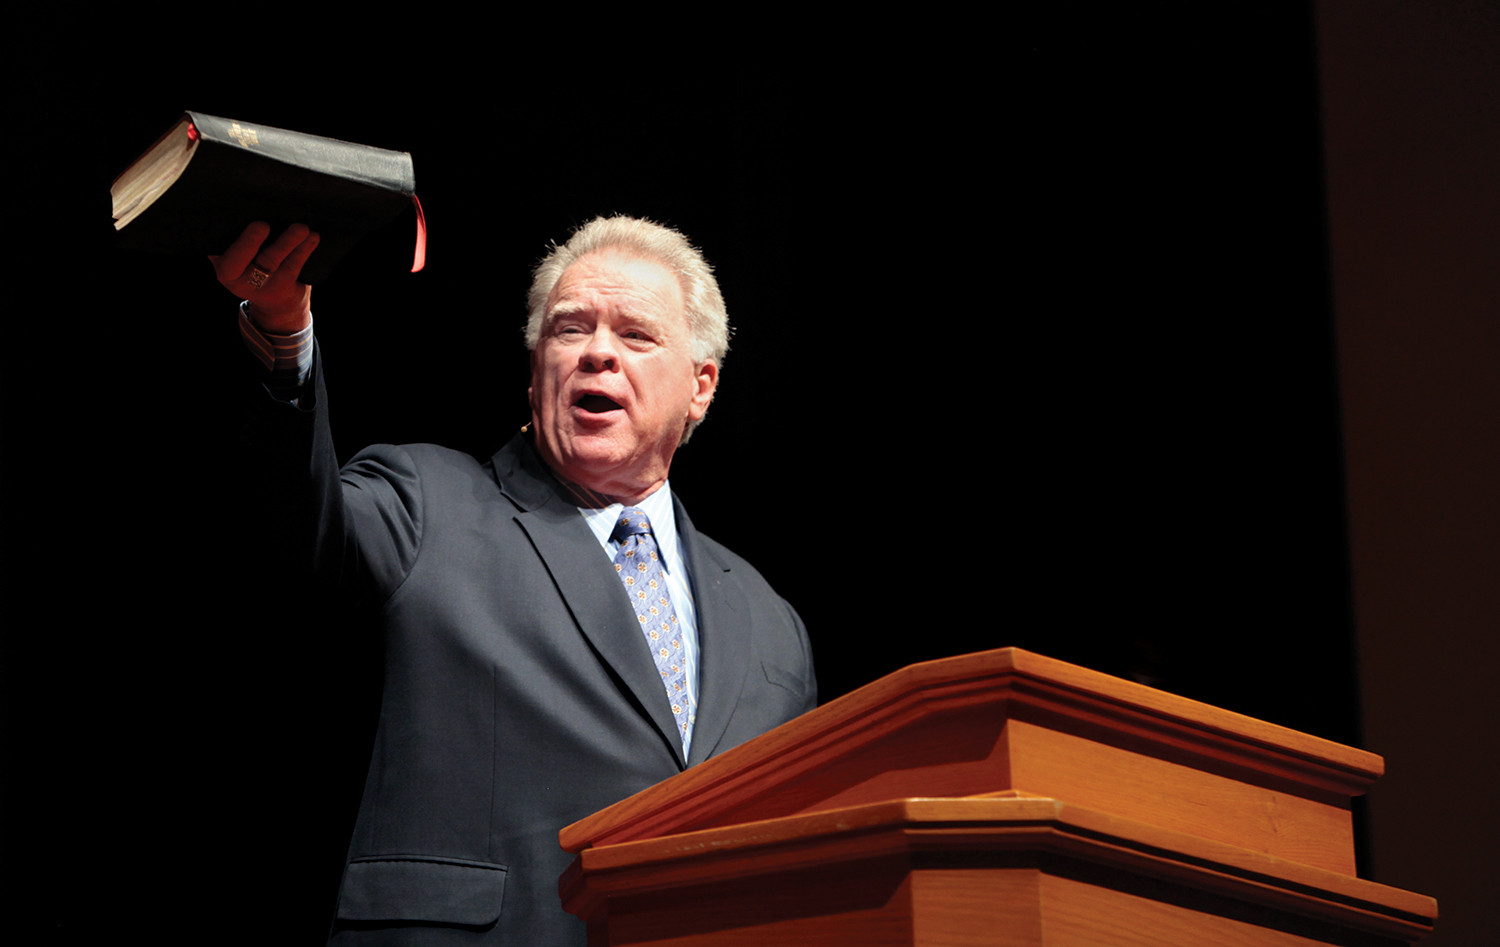 Audio from a 2000 interview with Paige Patterson, president of Southwestern Baptist Theological Seminary, resurfaced last week. In the interview, which has elicited a firestorm of criticism since its reappearance, Patterson urges women facing domestic violence and abuse to not seek divorce.  Photo: Paige Patterson.